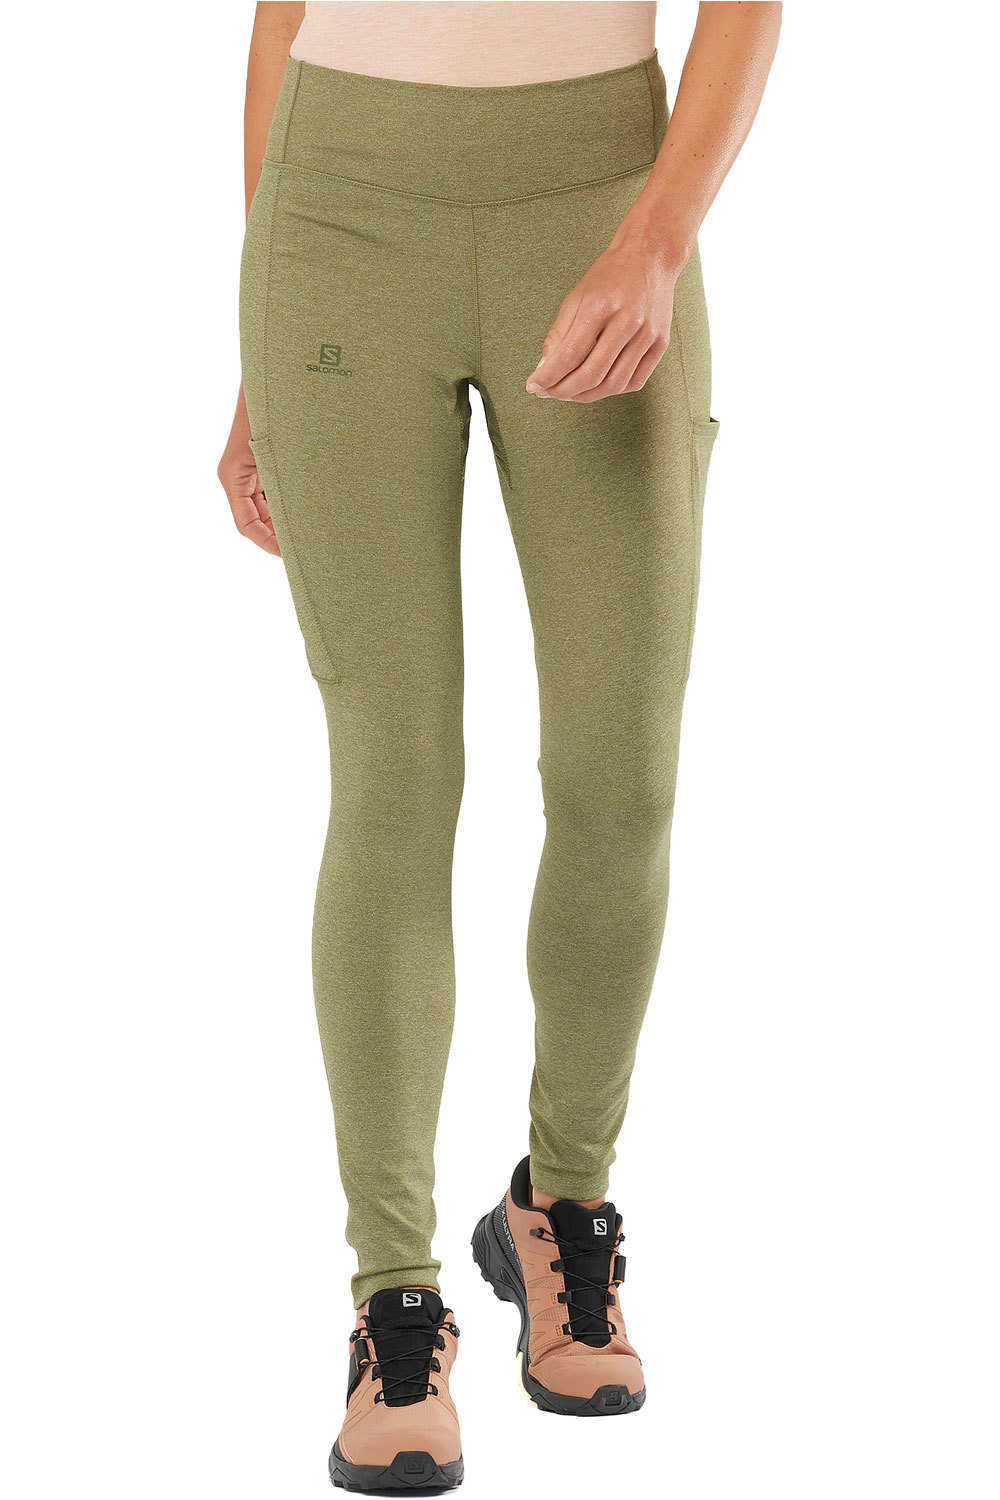 Mallas trail running largas mujer outline tights w